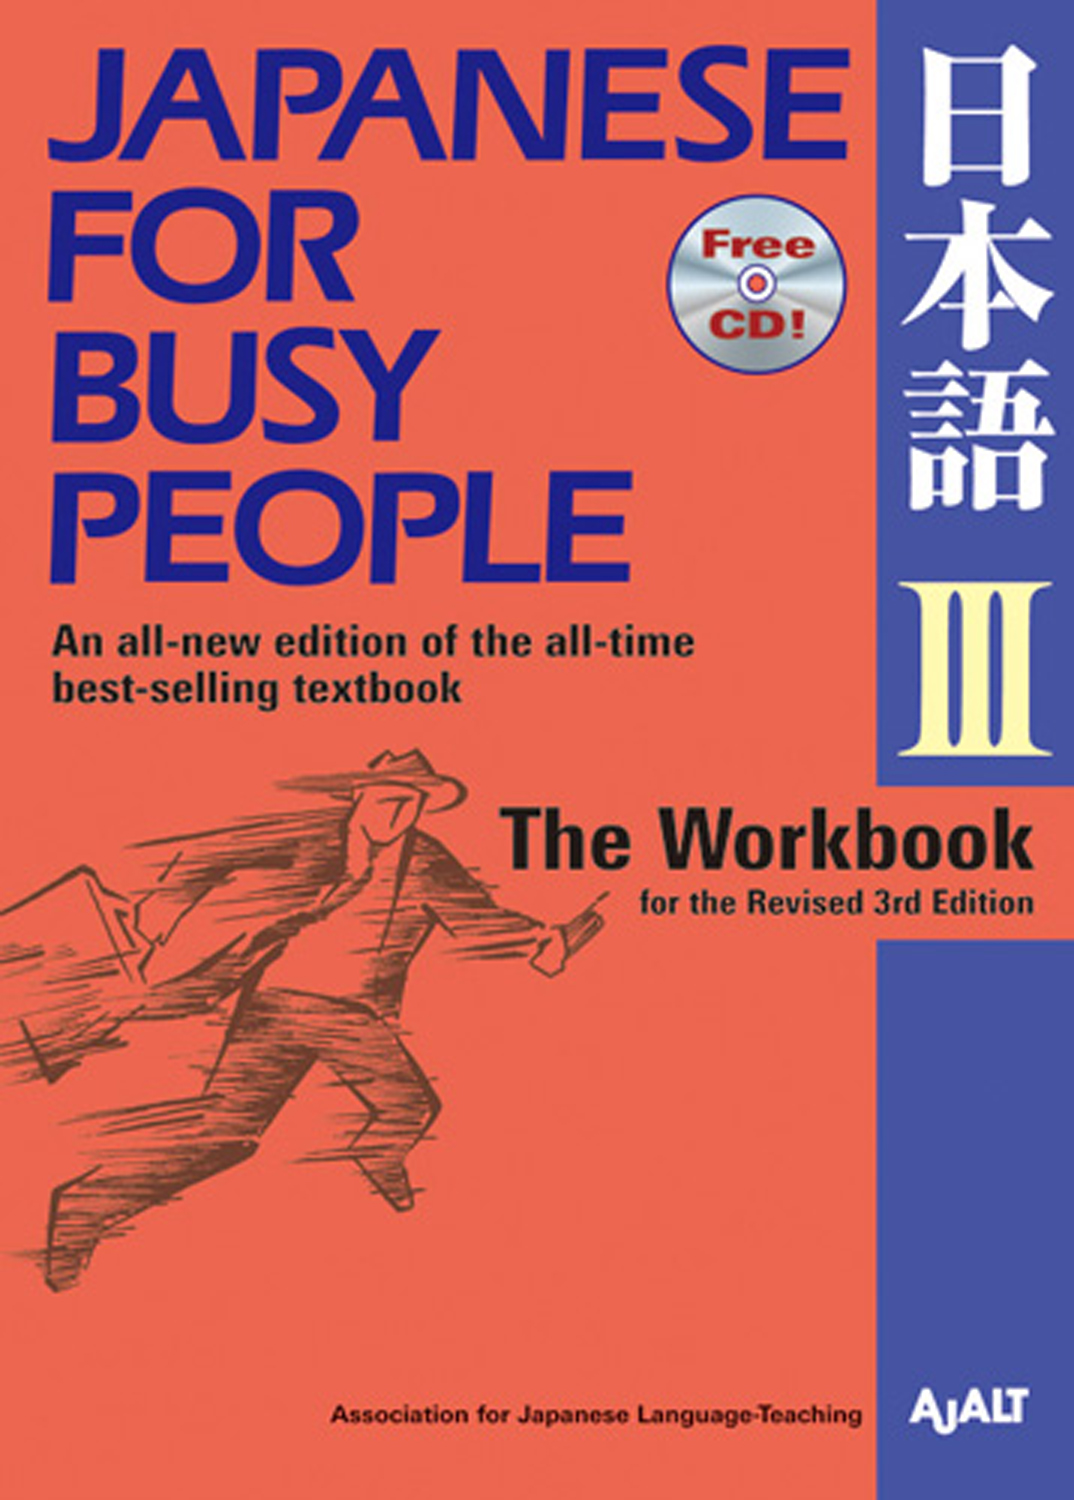 Cover of Japanese for Busy People Revised 3rd Edition III (The Workbook): An all-new edition of the all-time best-selling textbook.